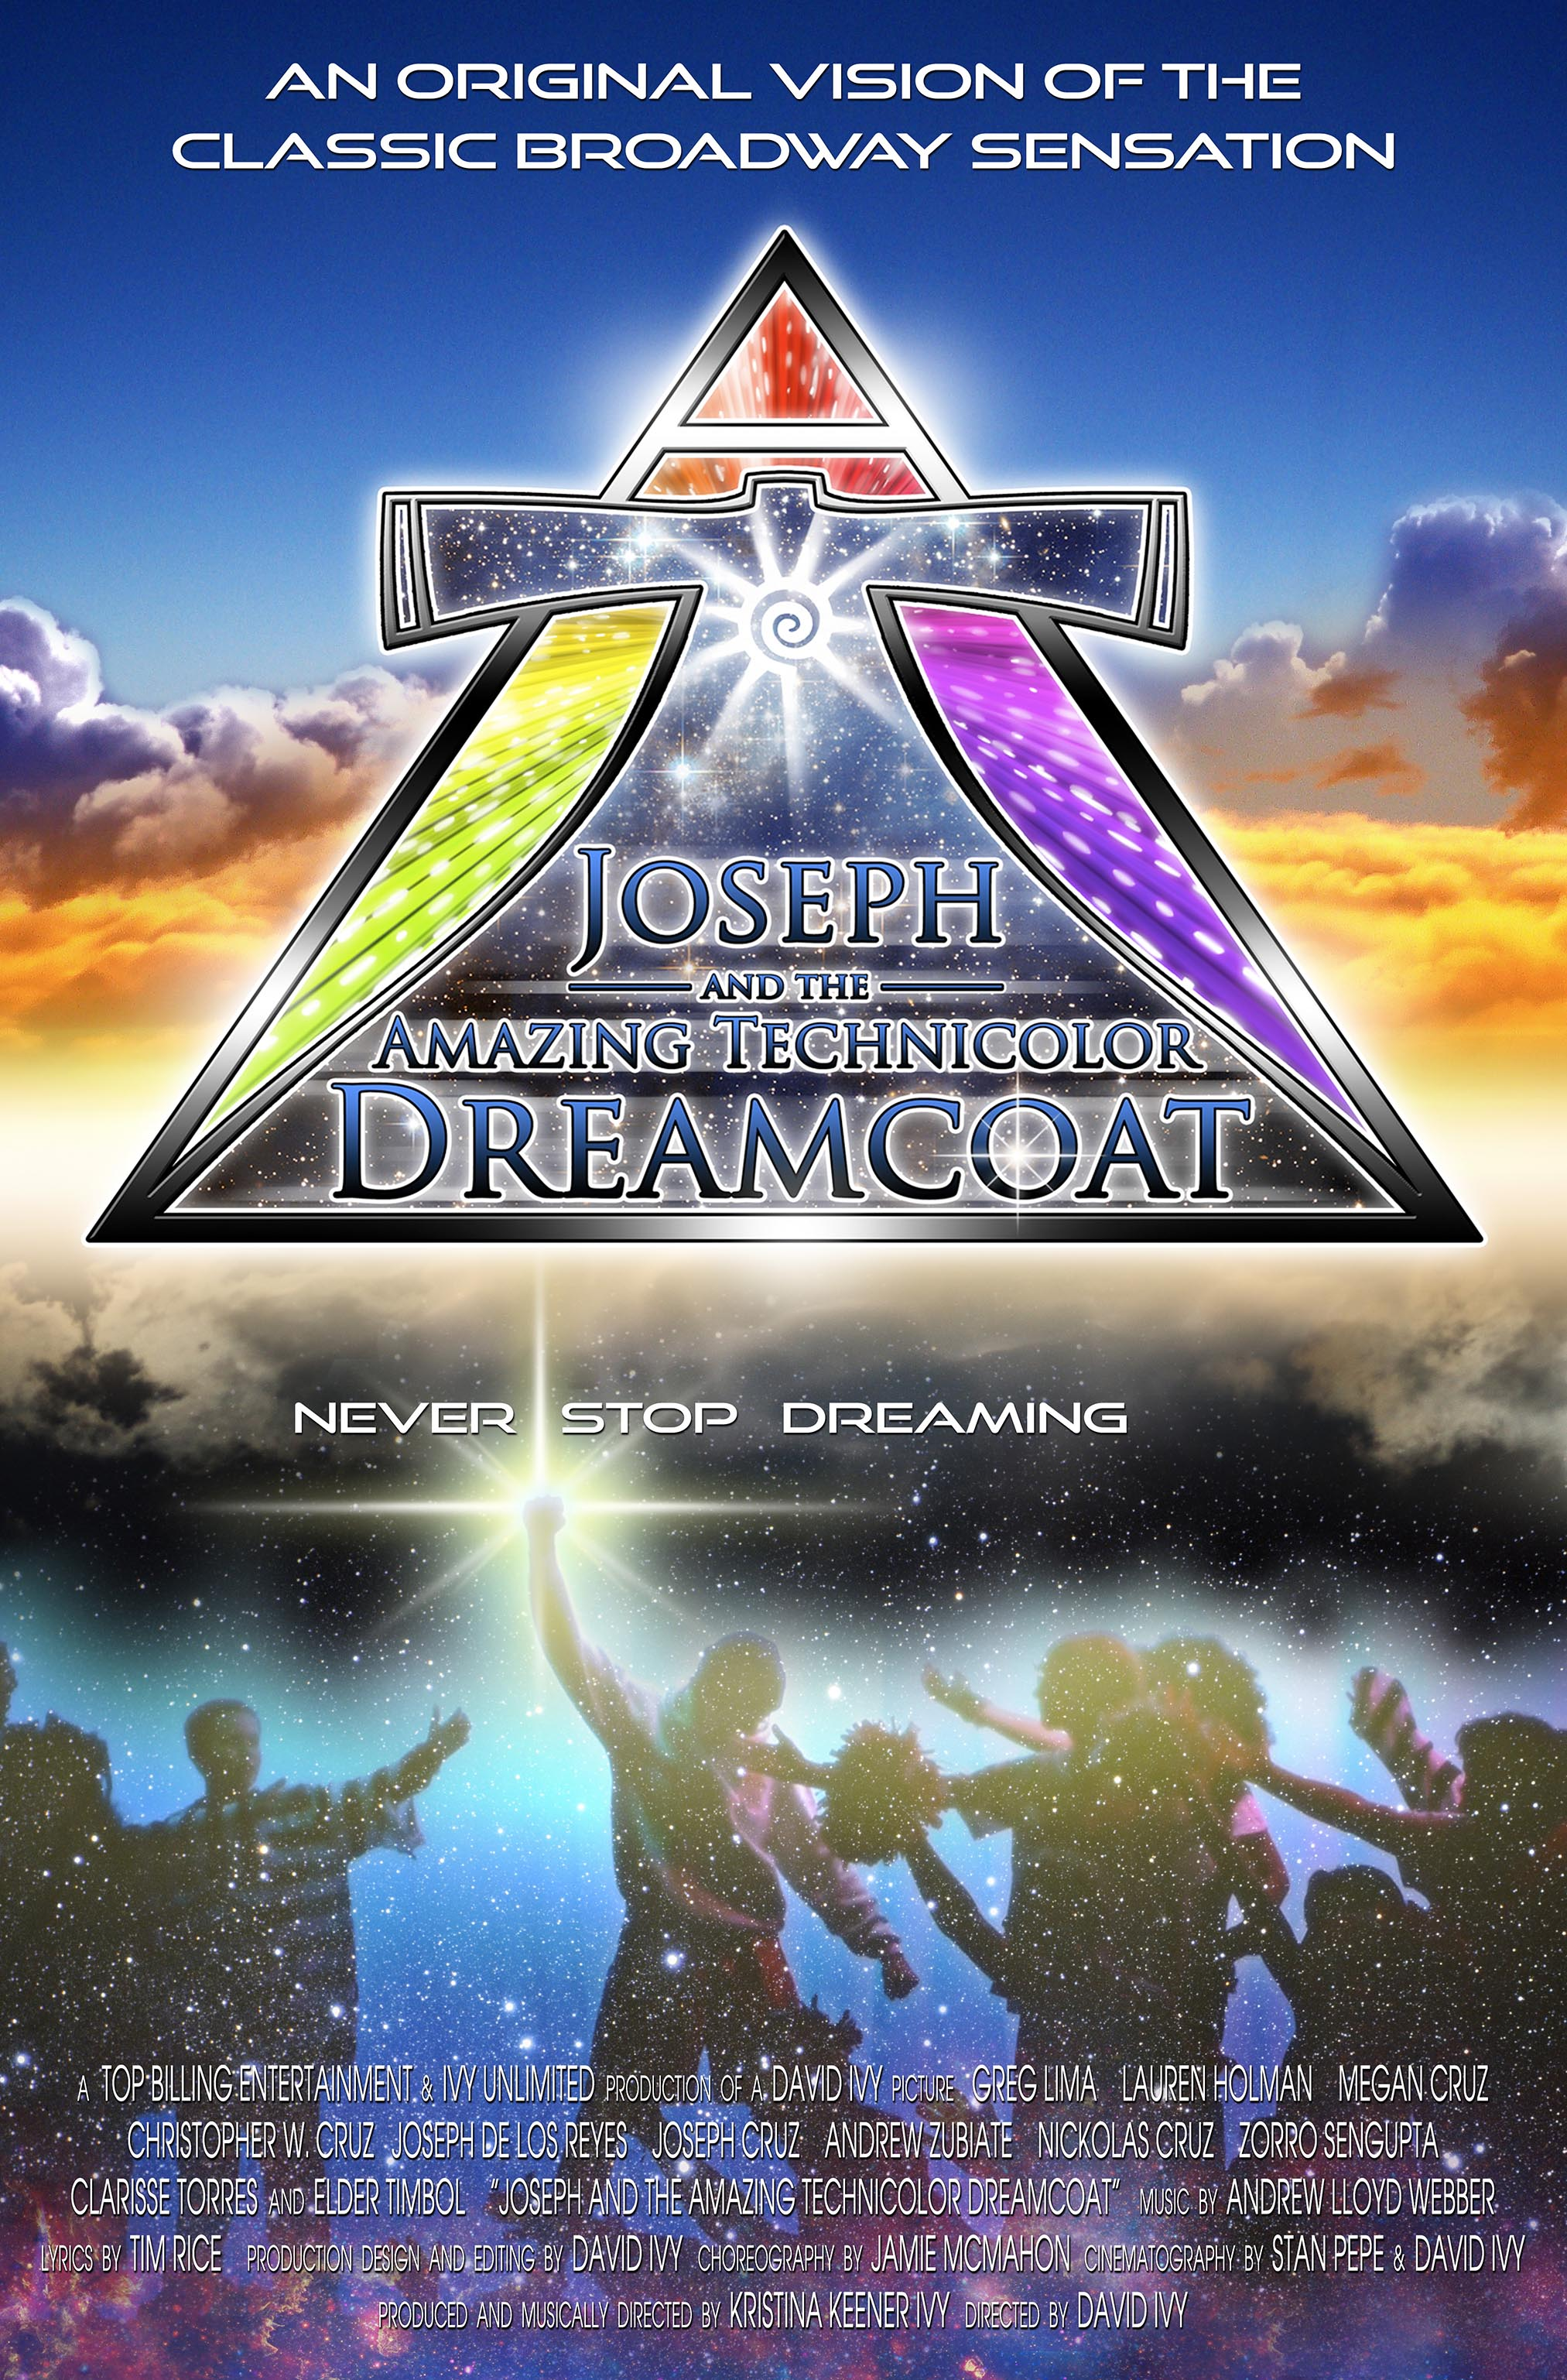 Joseph and the Amazing Technicolor Dreamcoat - Poster [02_Q6]